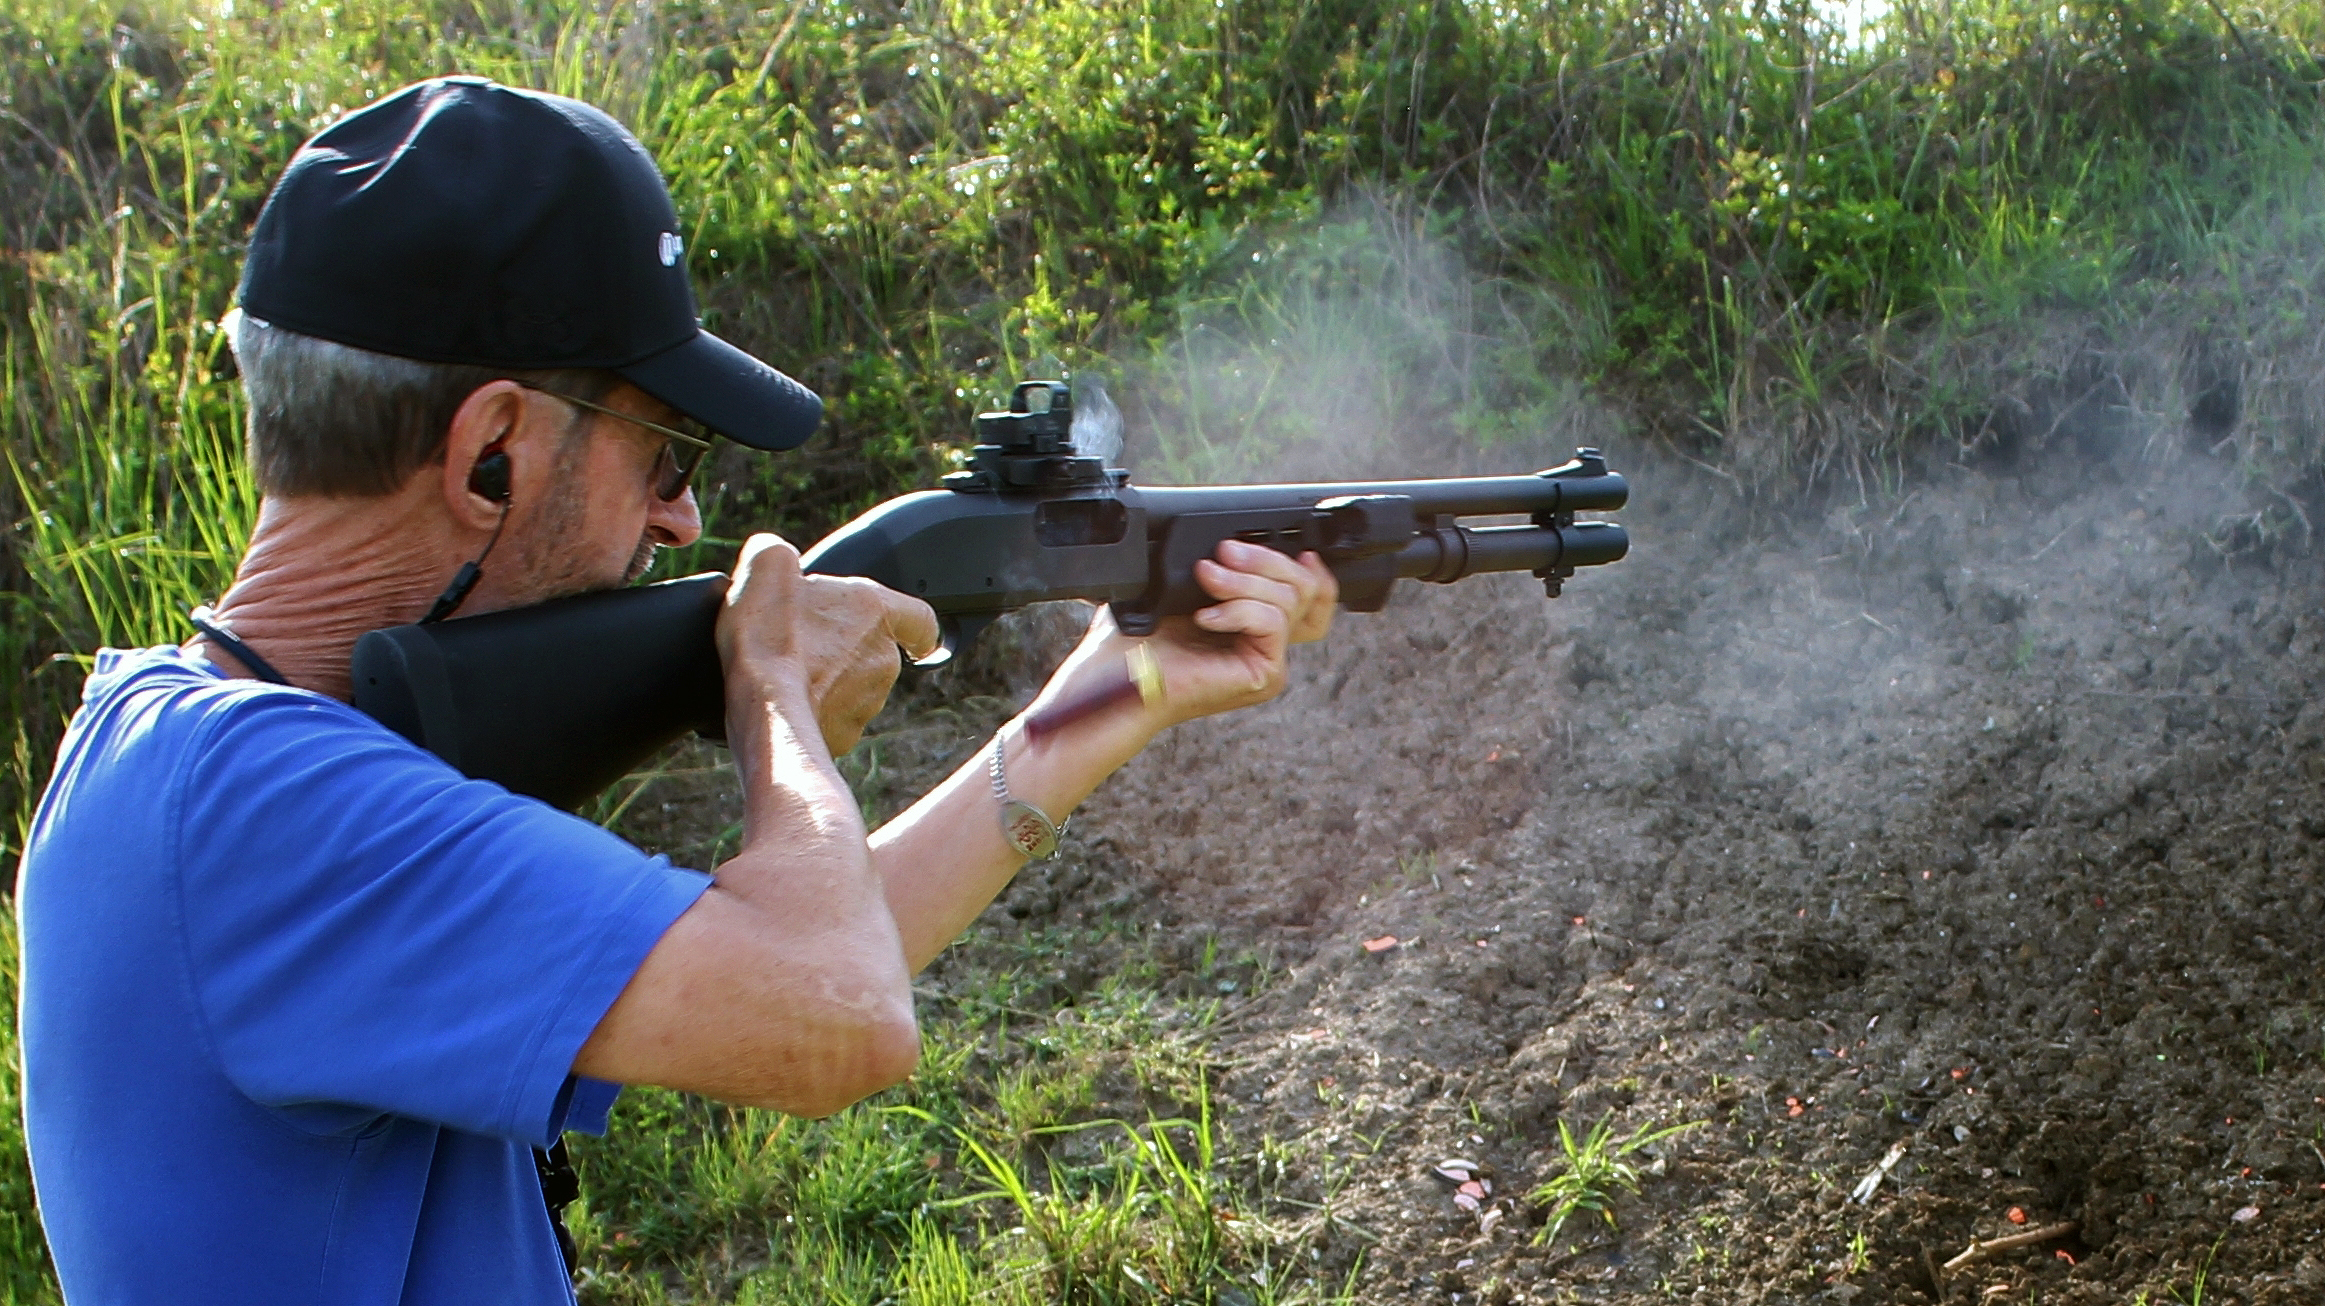 Testing various 12 gauge buckshot loads on the range.